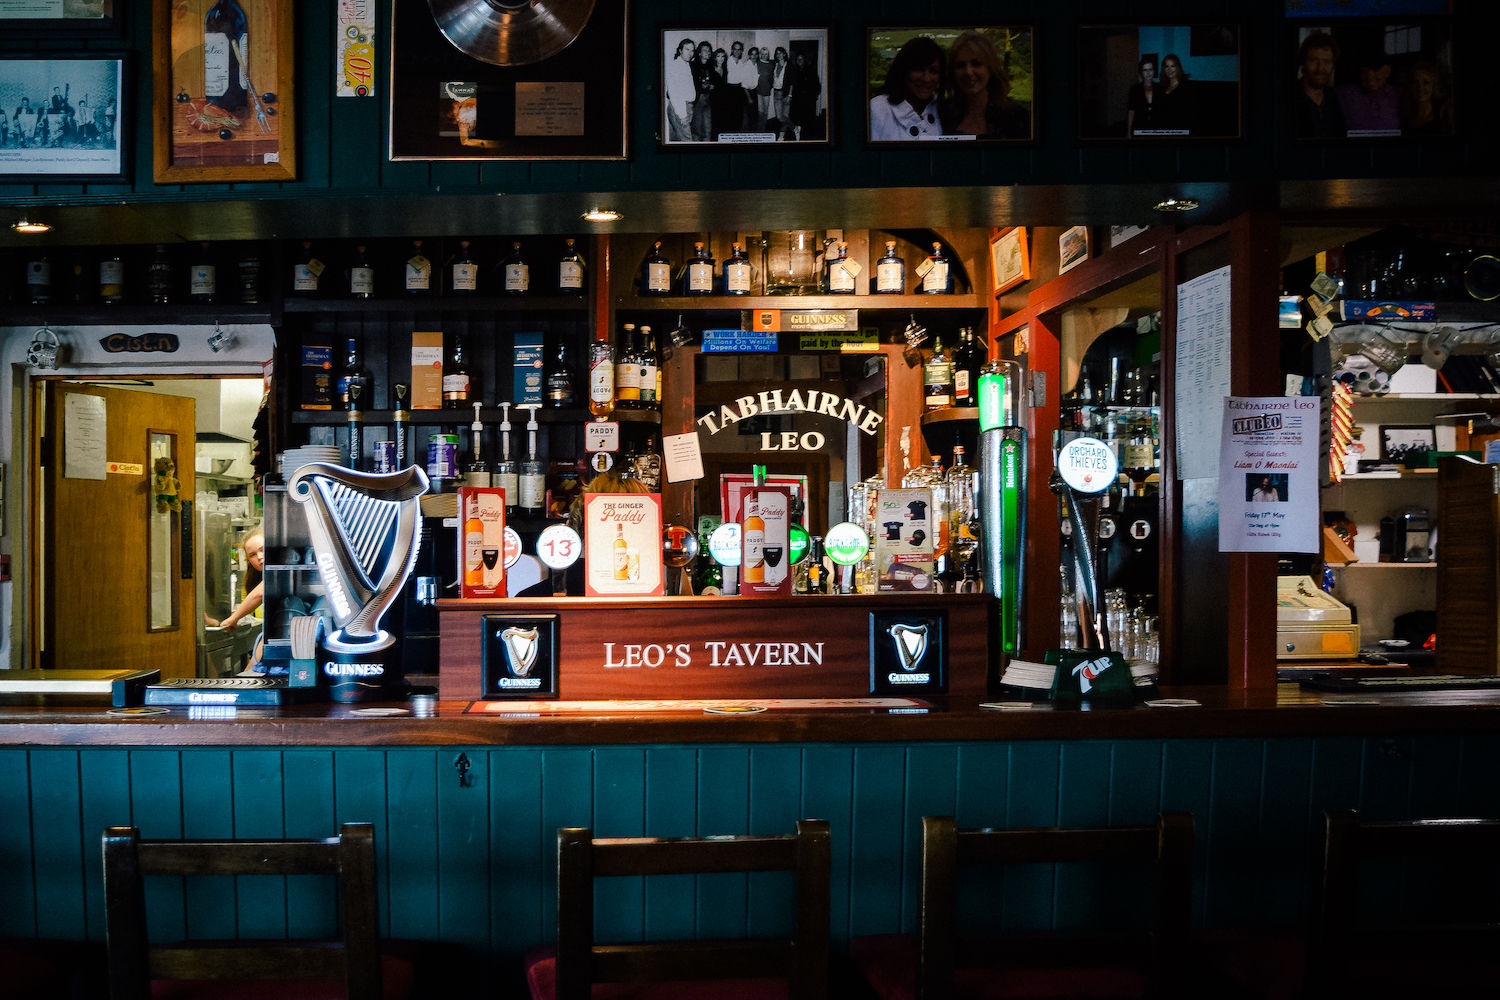 Our regular pub - Leo's Tavern in Donegal